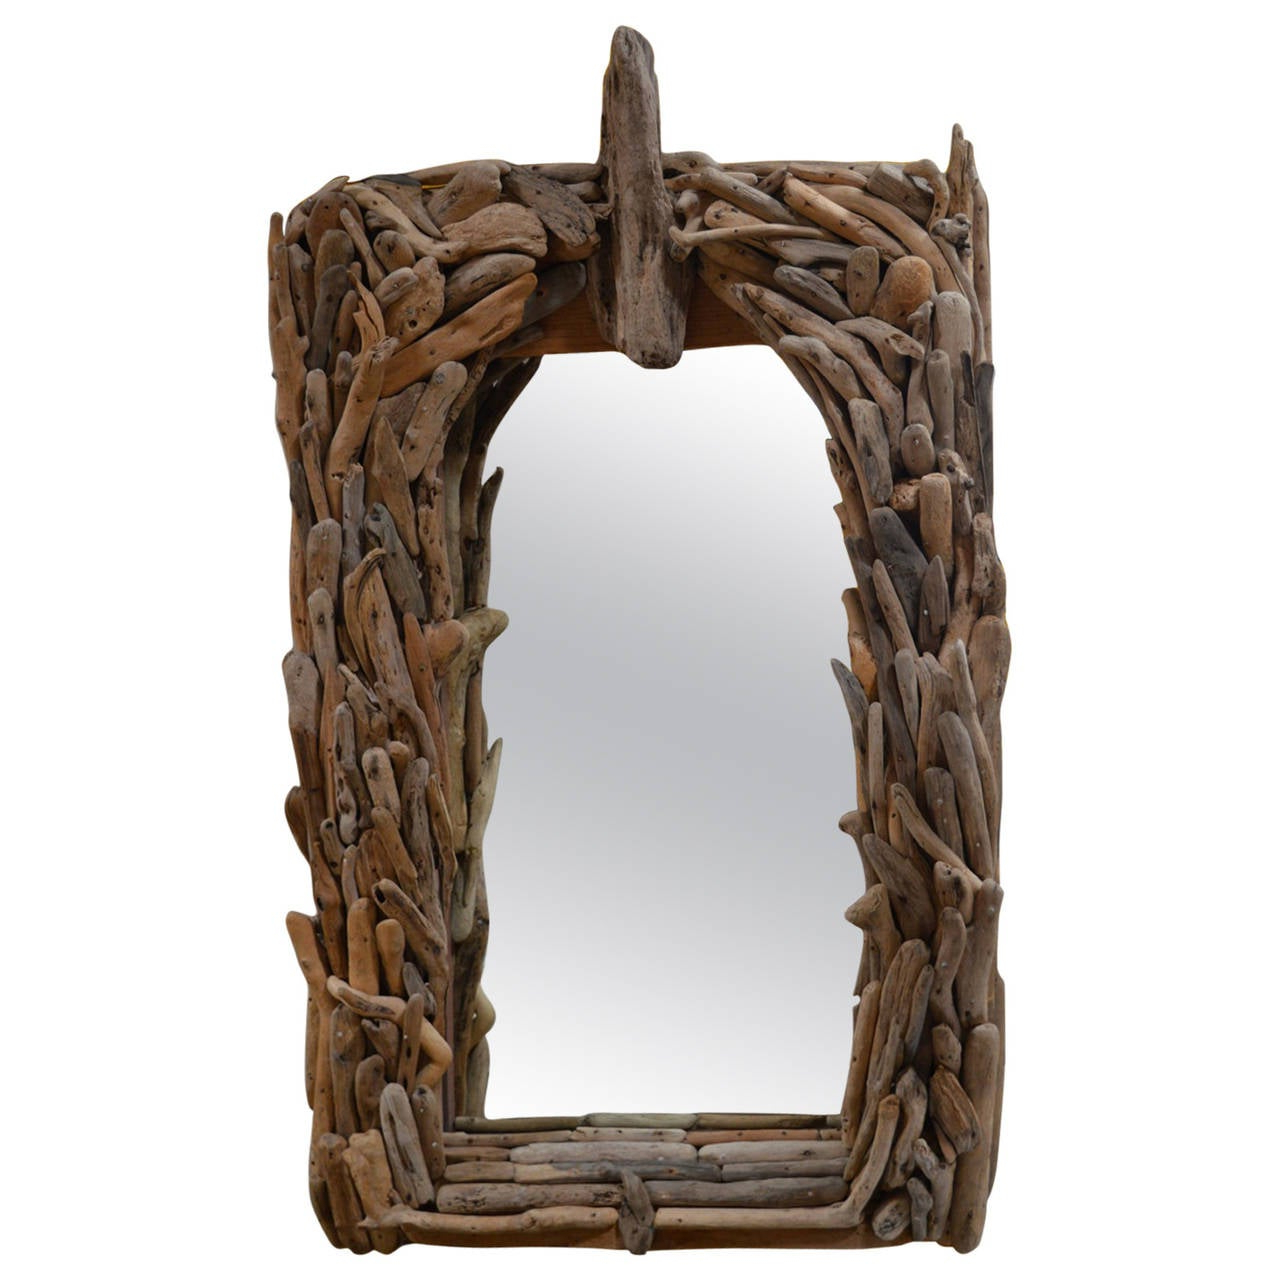 Distressed Wood Wall Mirrors Intended For Famous Distress Wood Wall Mirror (View 10 of 20)